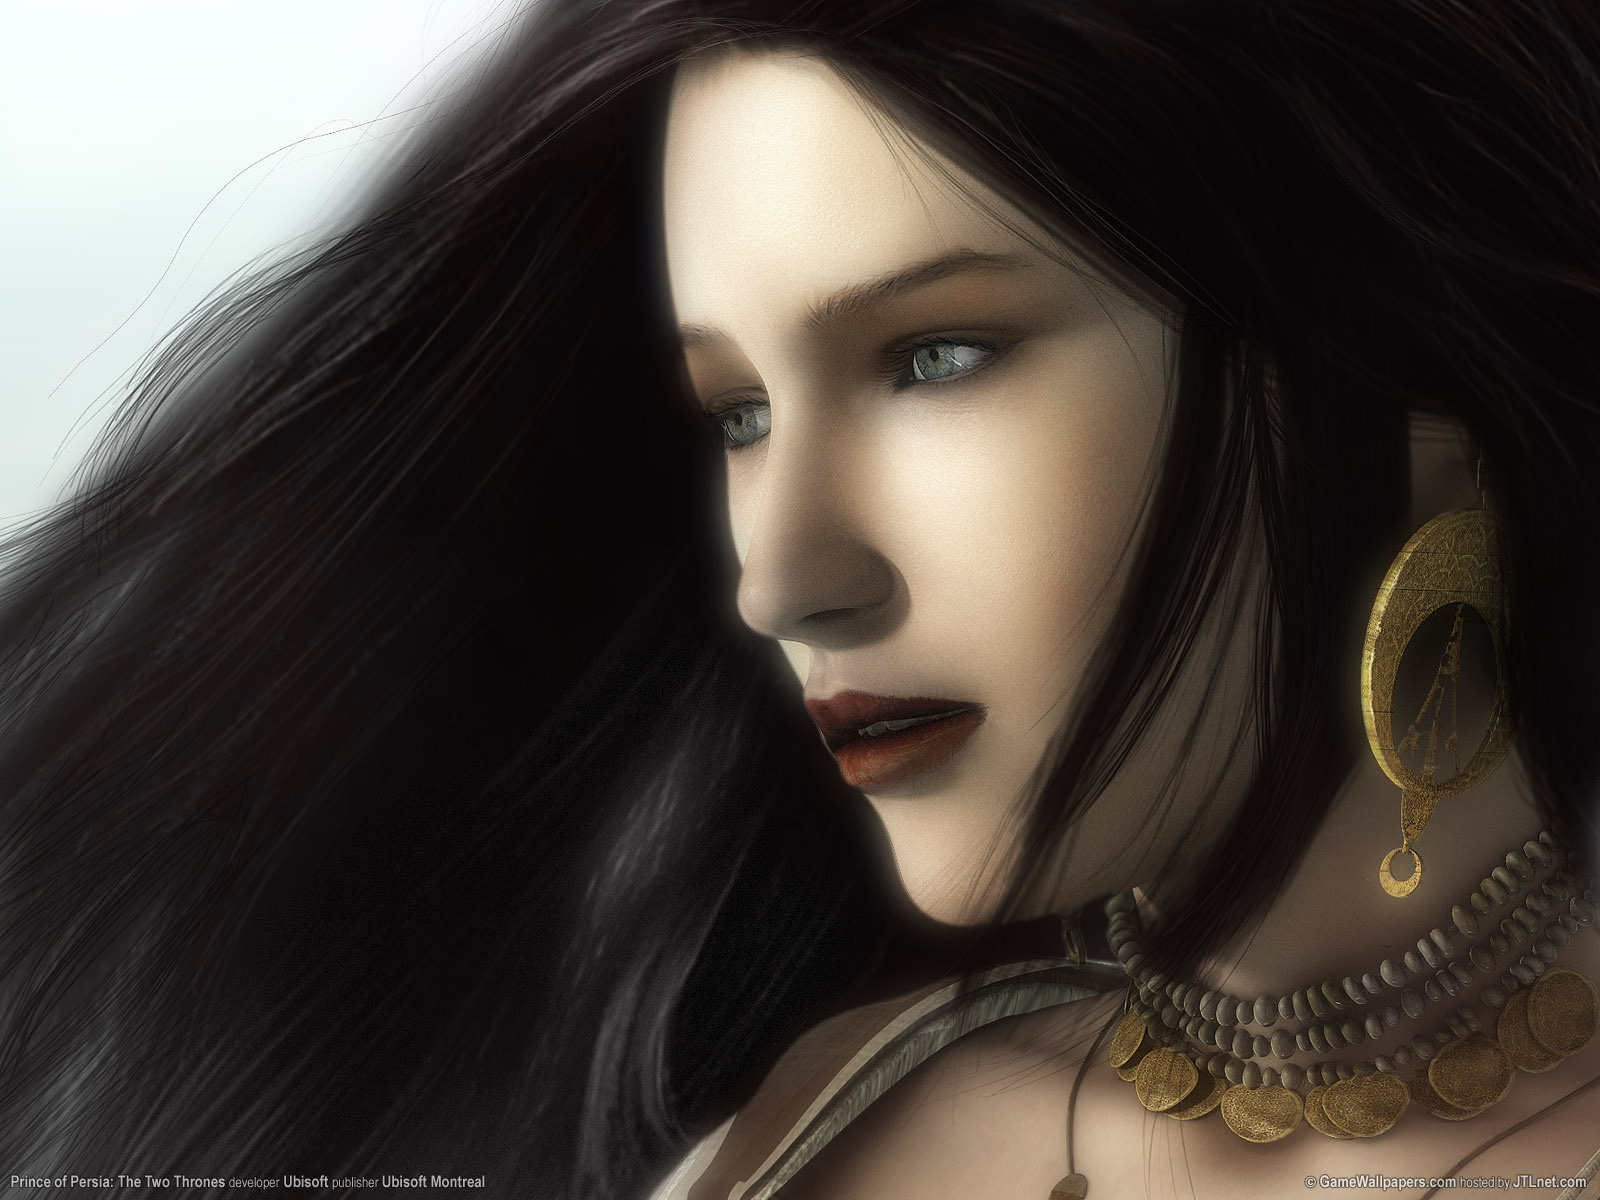 8.jpg - Prince of Persia: The Two Thrones